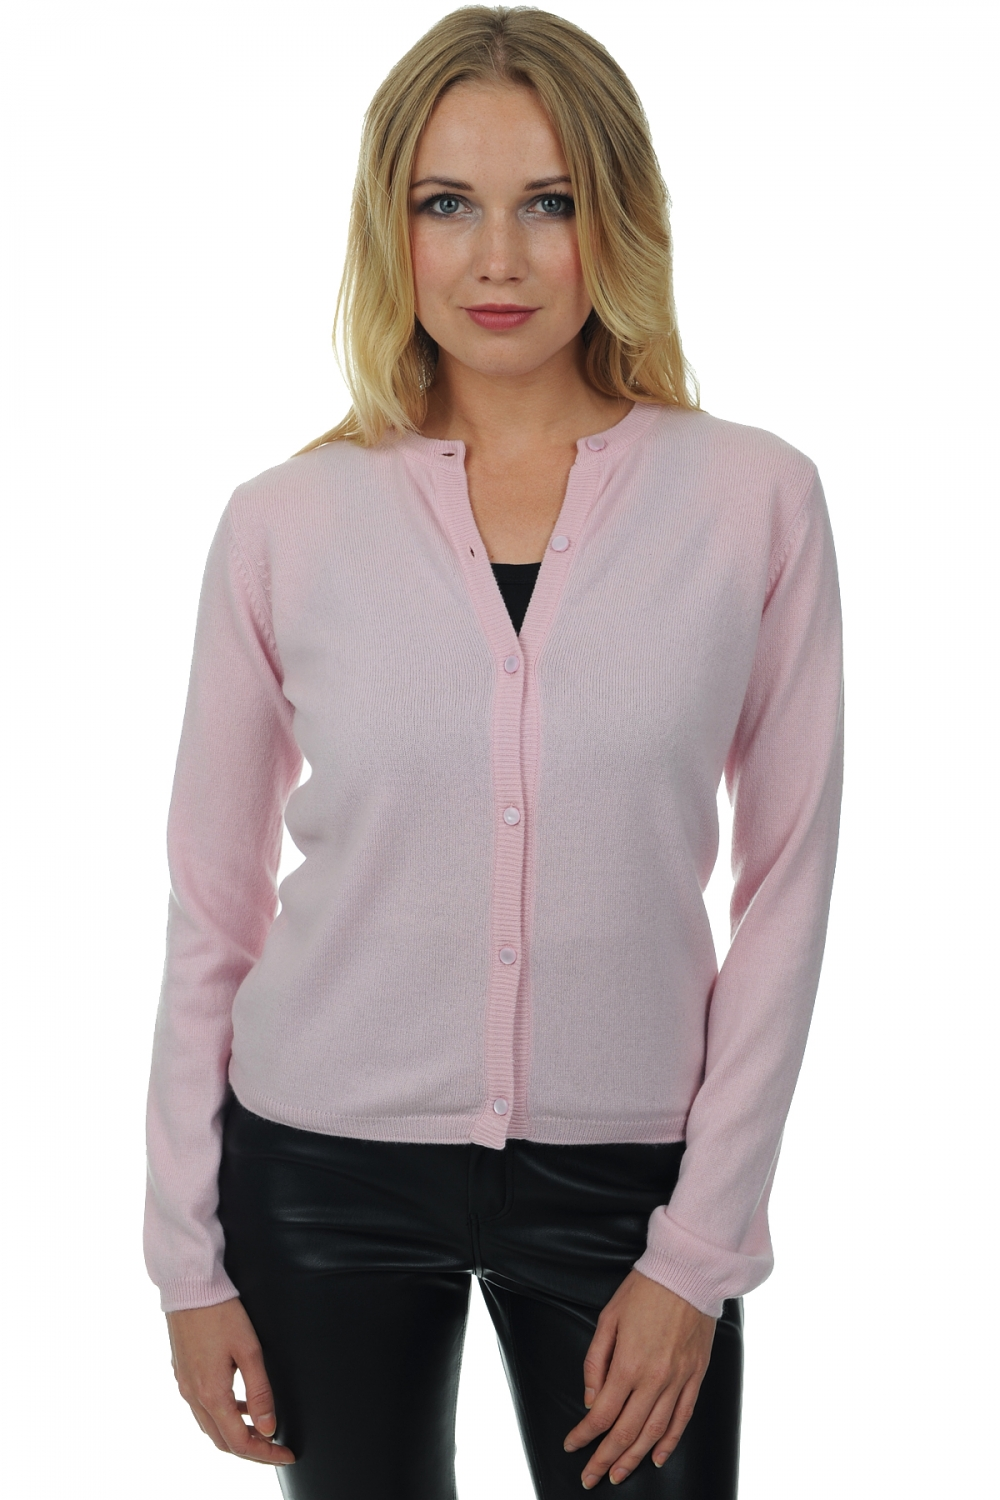 cashmere ladies cardigans chloe blushing bride m